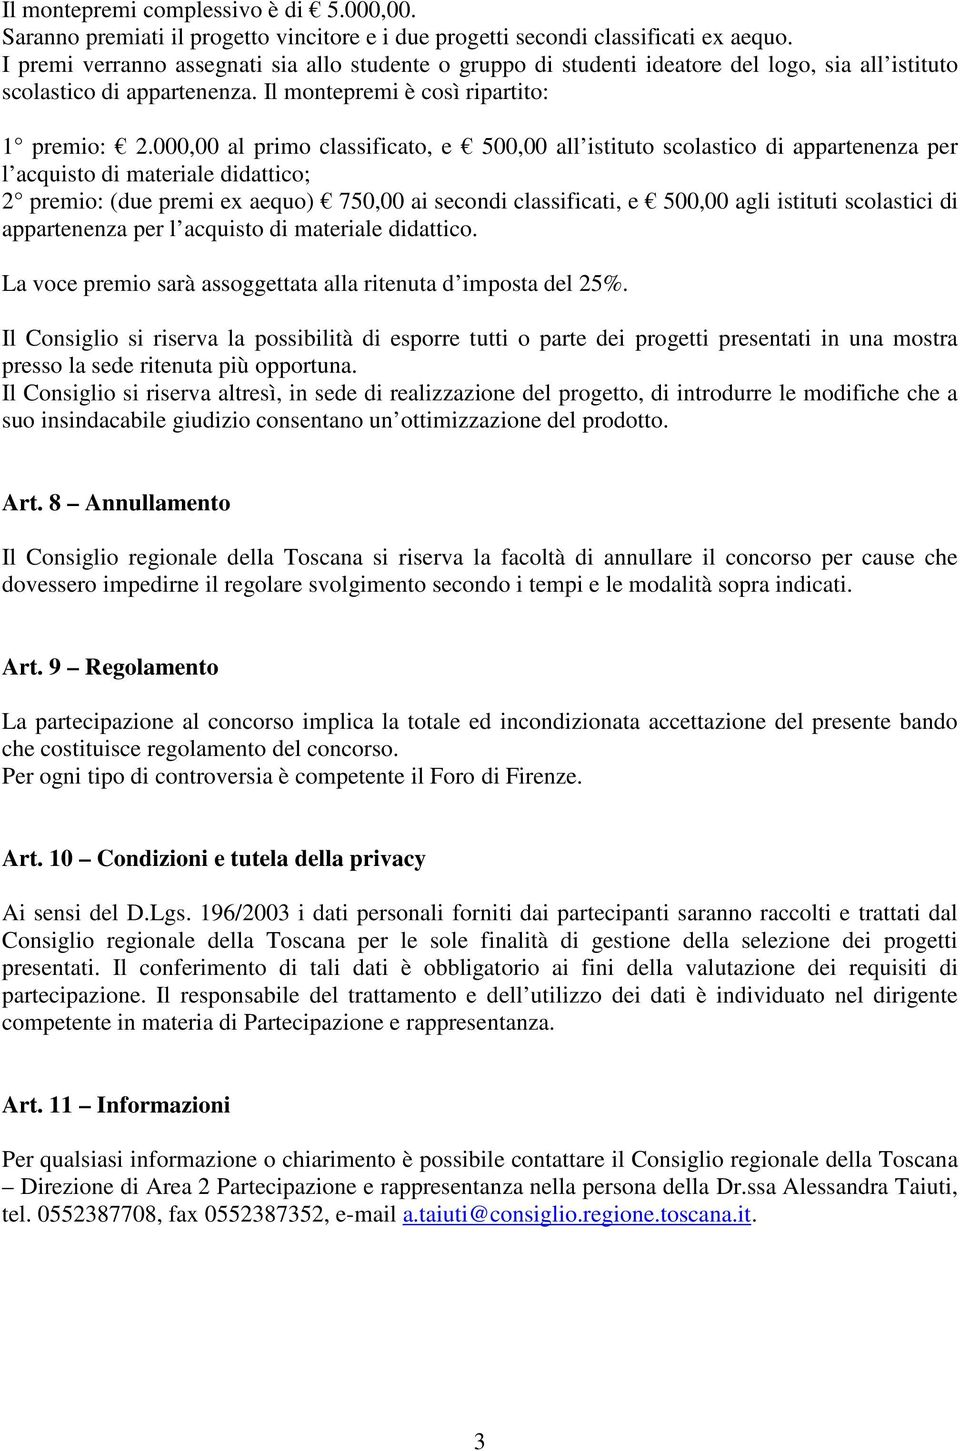 000,00 al primo classificato, e 500,00 all istituto scolastico di appartenenza per l acquisto di materiale didattico; 2 premio: (due premi ex aequo) 750,00 ai secondi classificati, e 500,00 agli